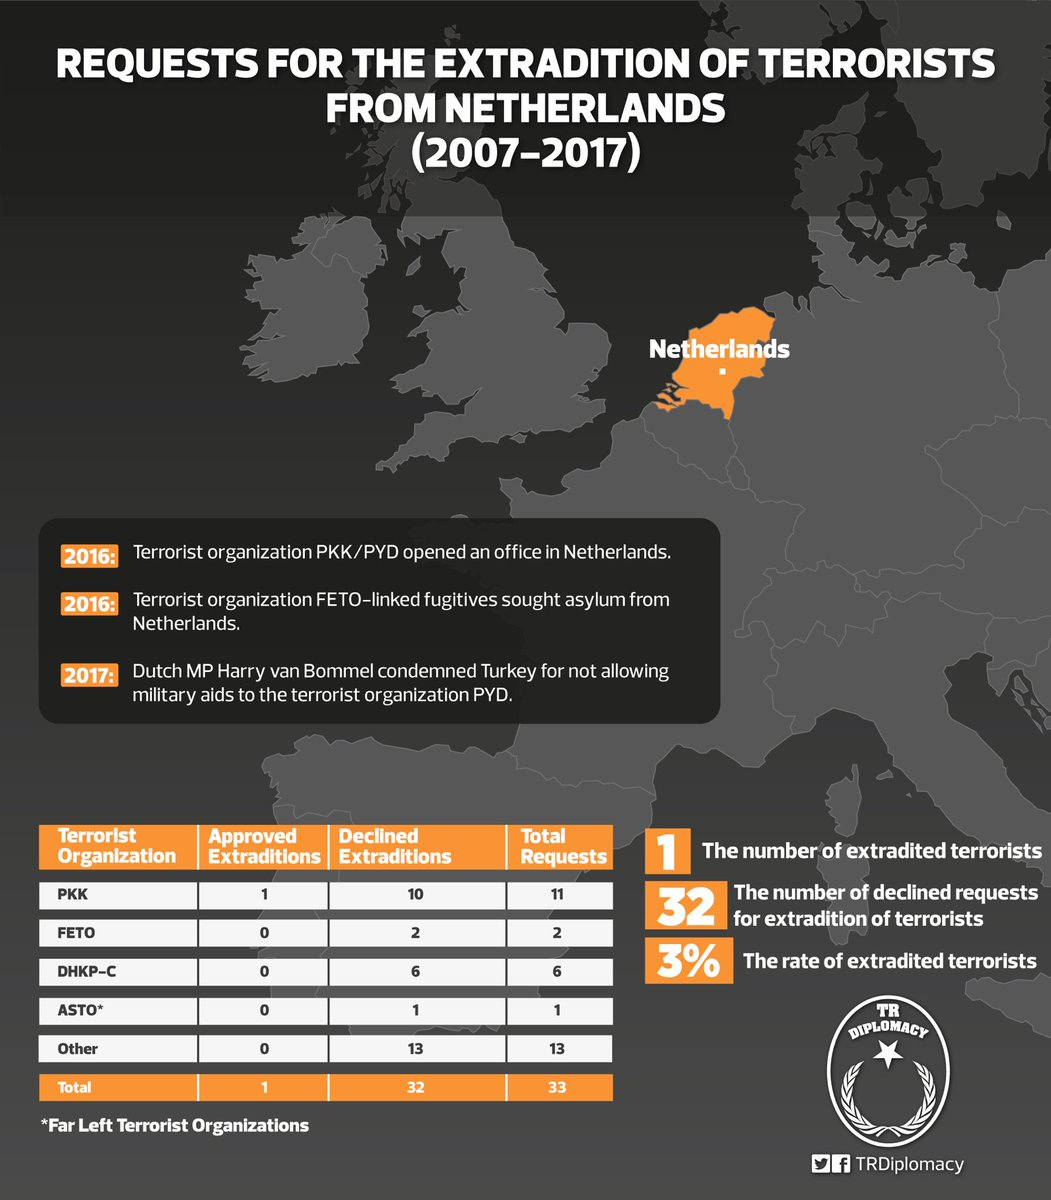 The hosting country for terrorists: Netherlands